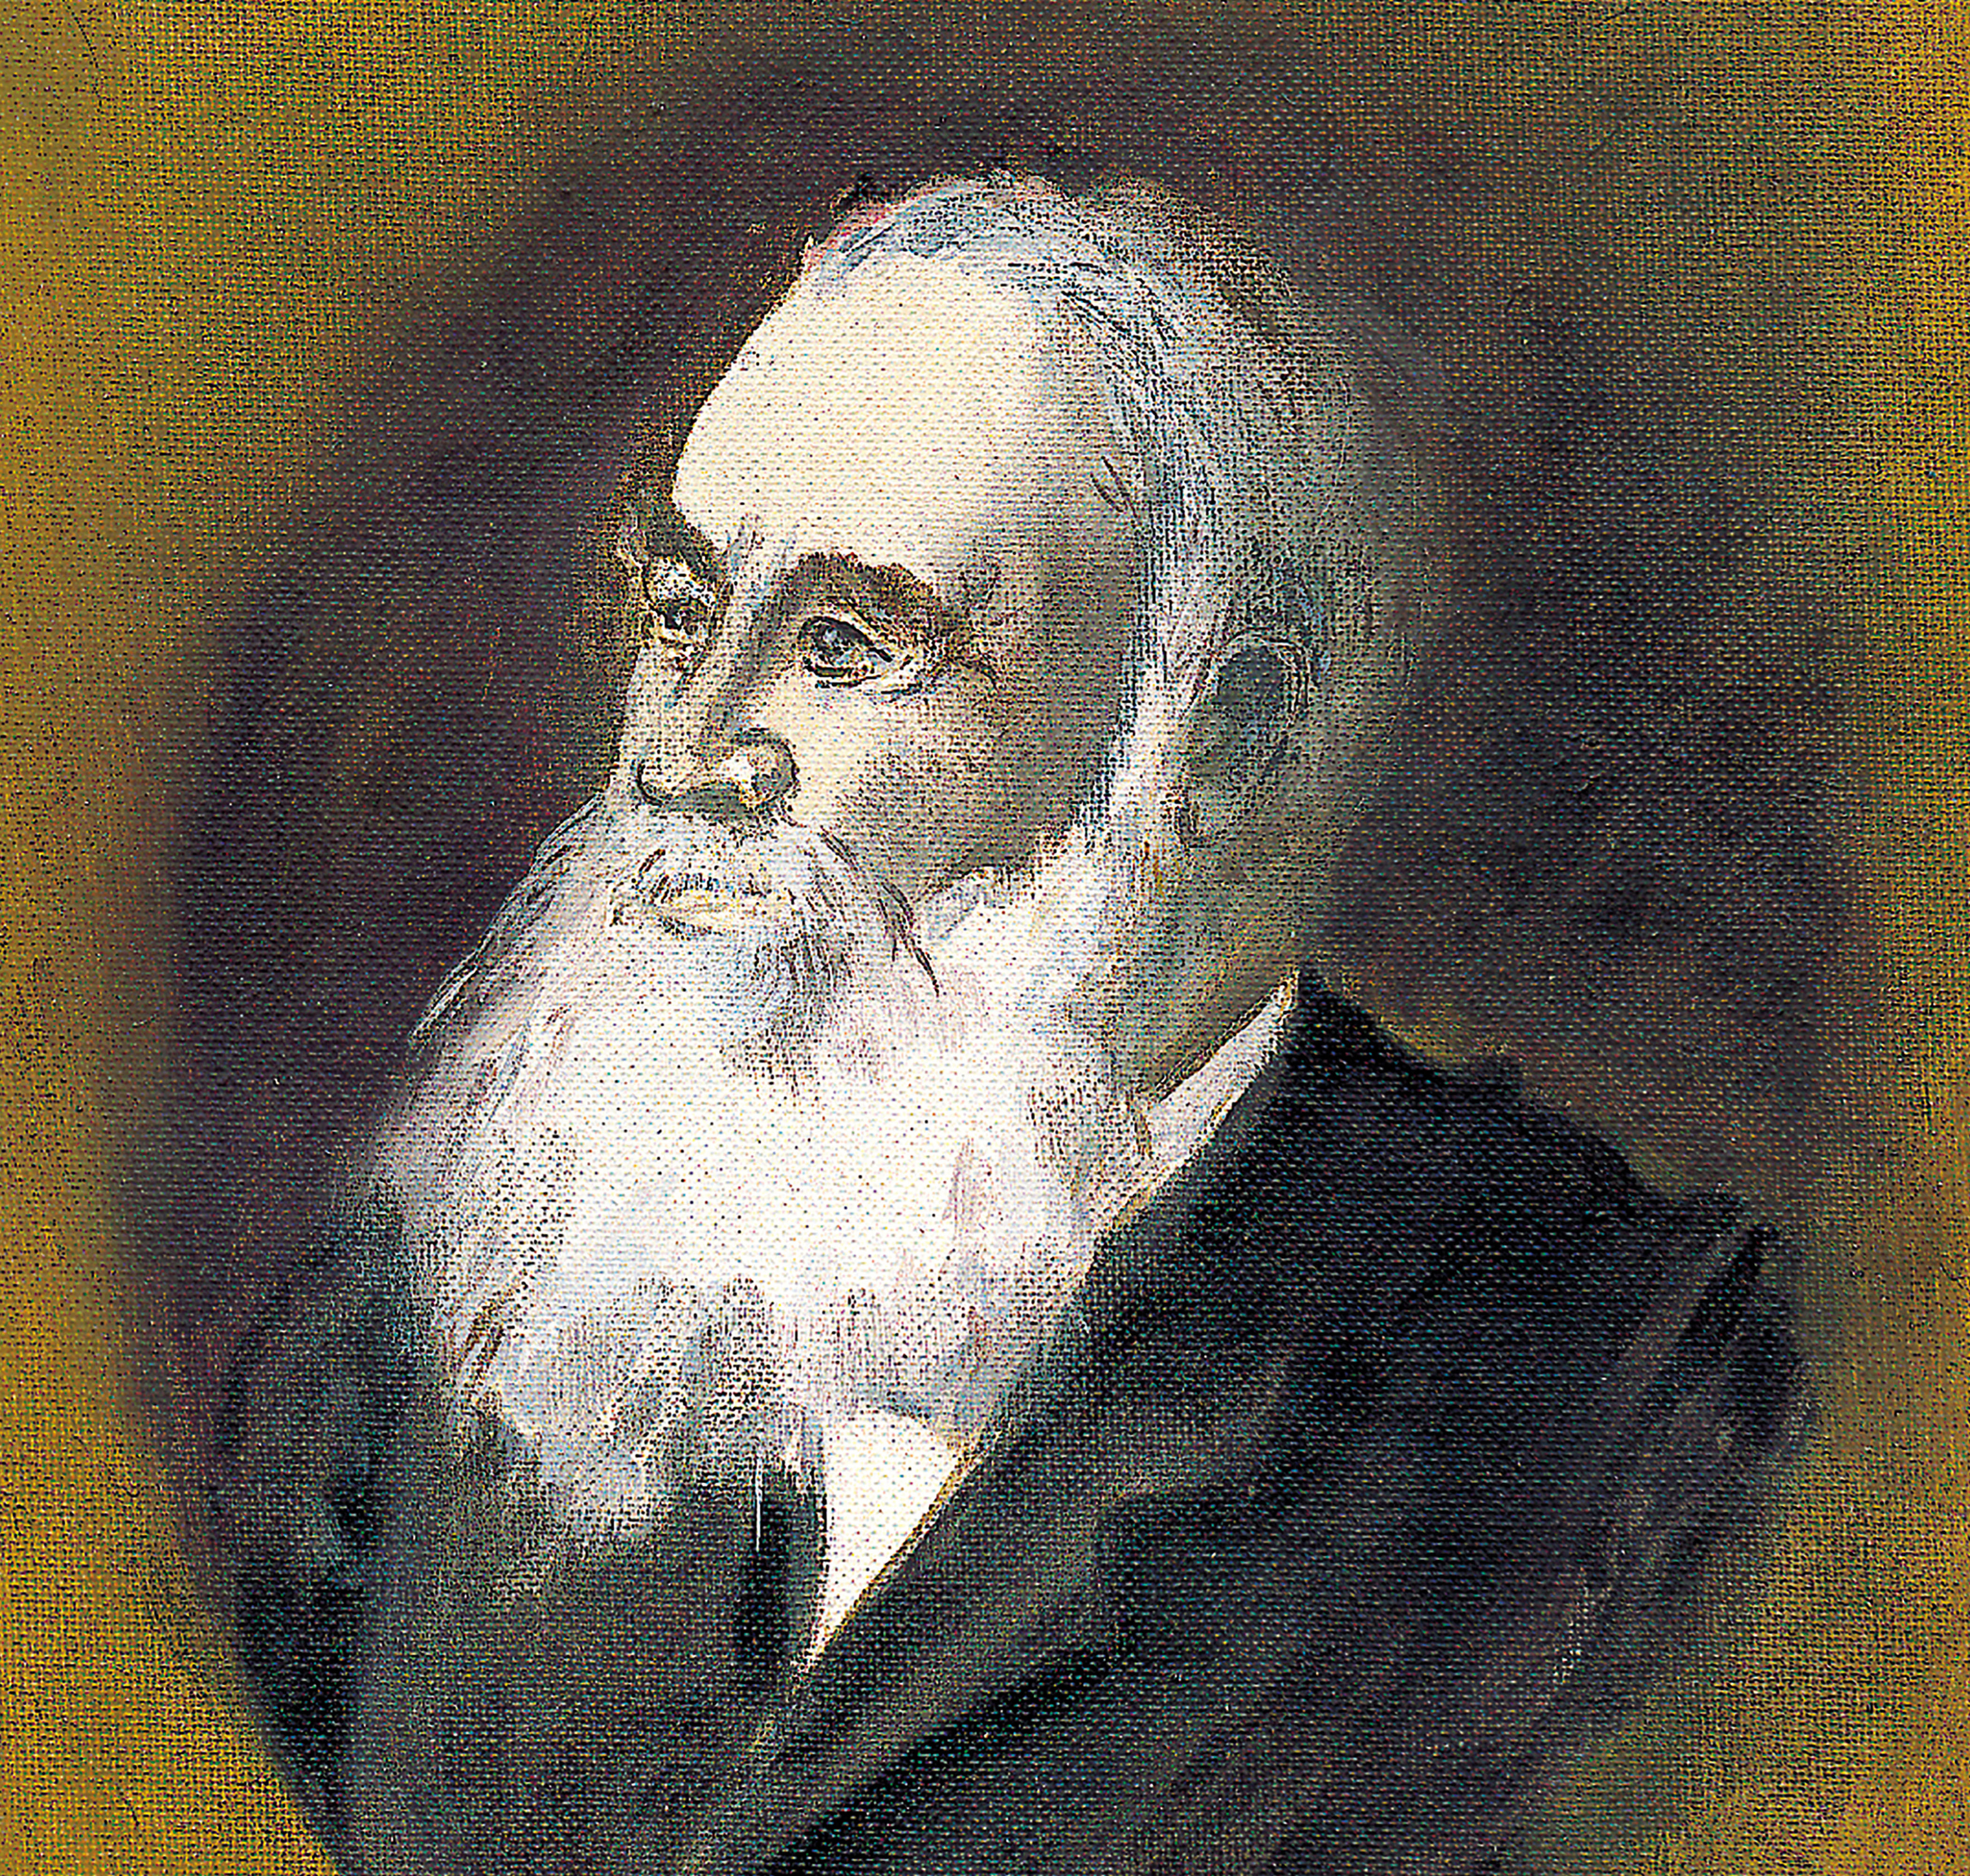 Portrait Painting of Dr Franz Schoenfeld, founder of Lukas